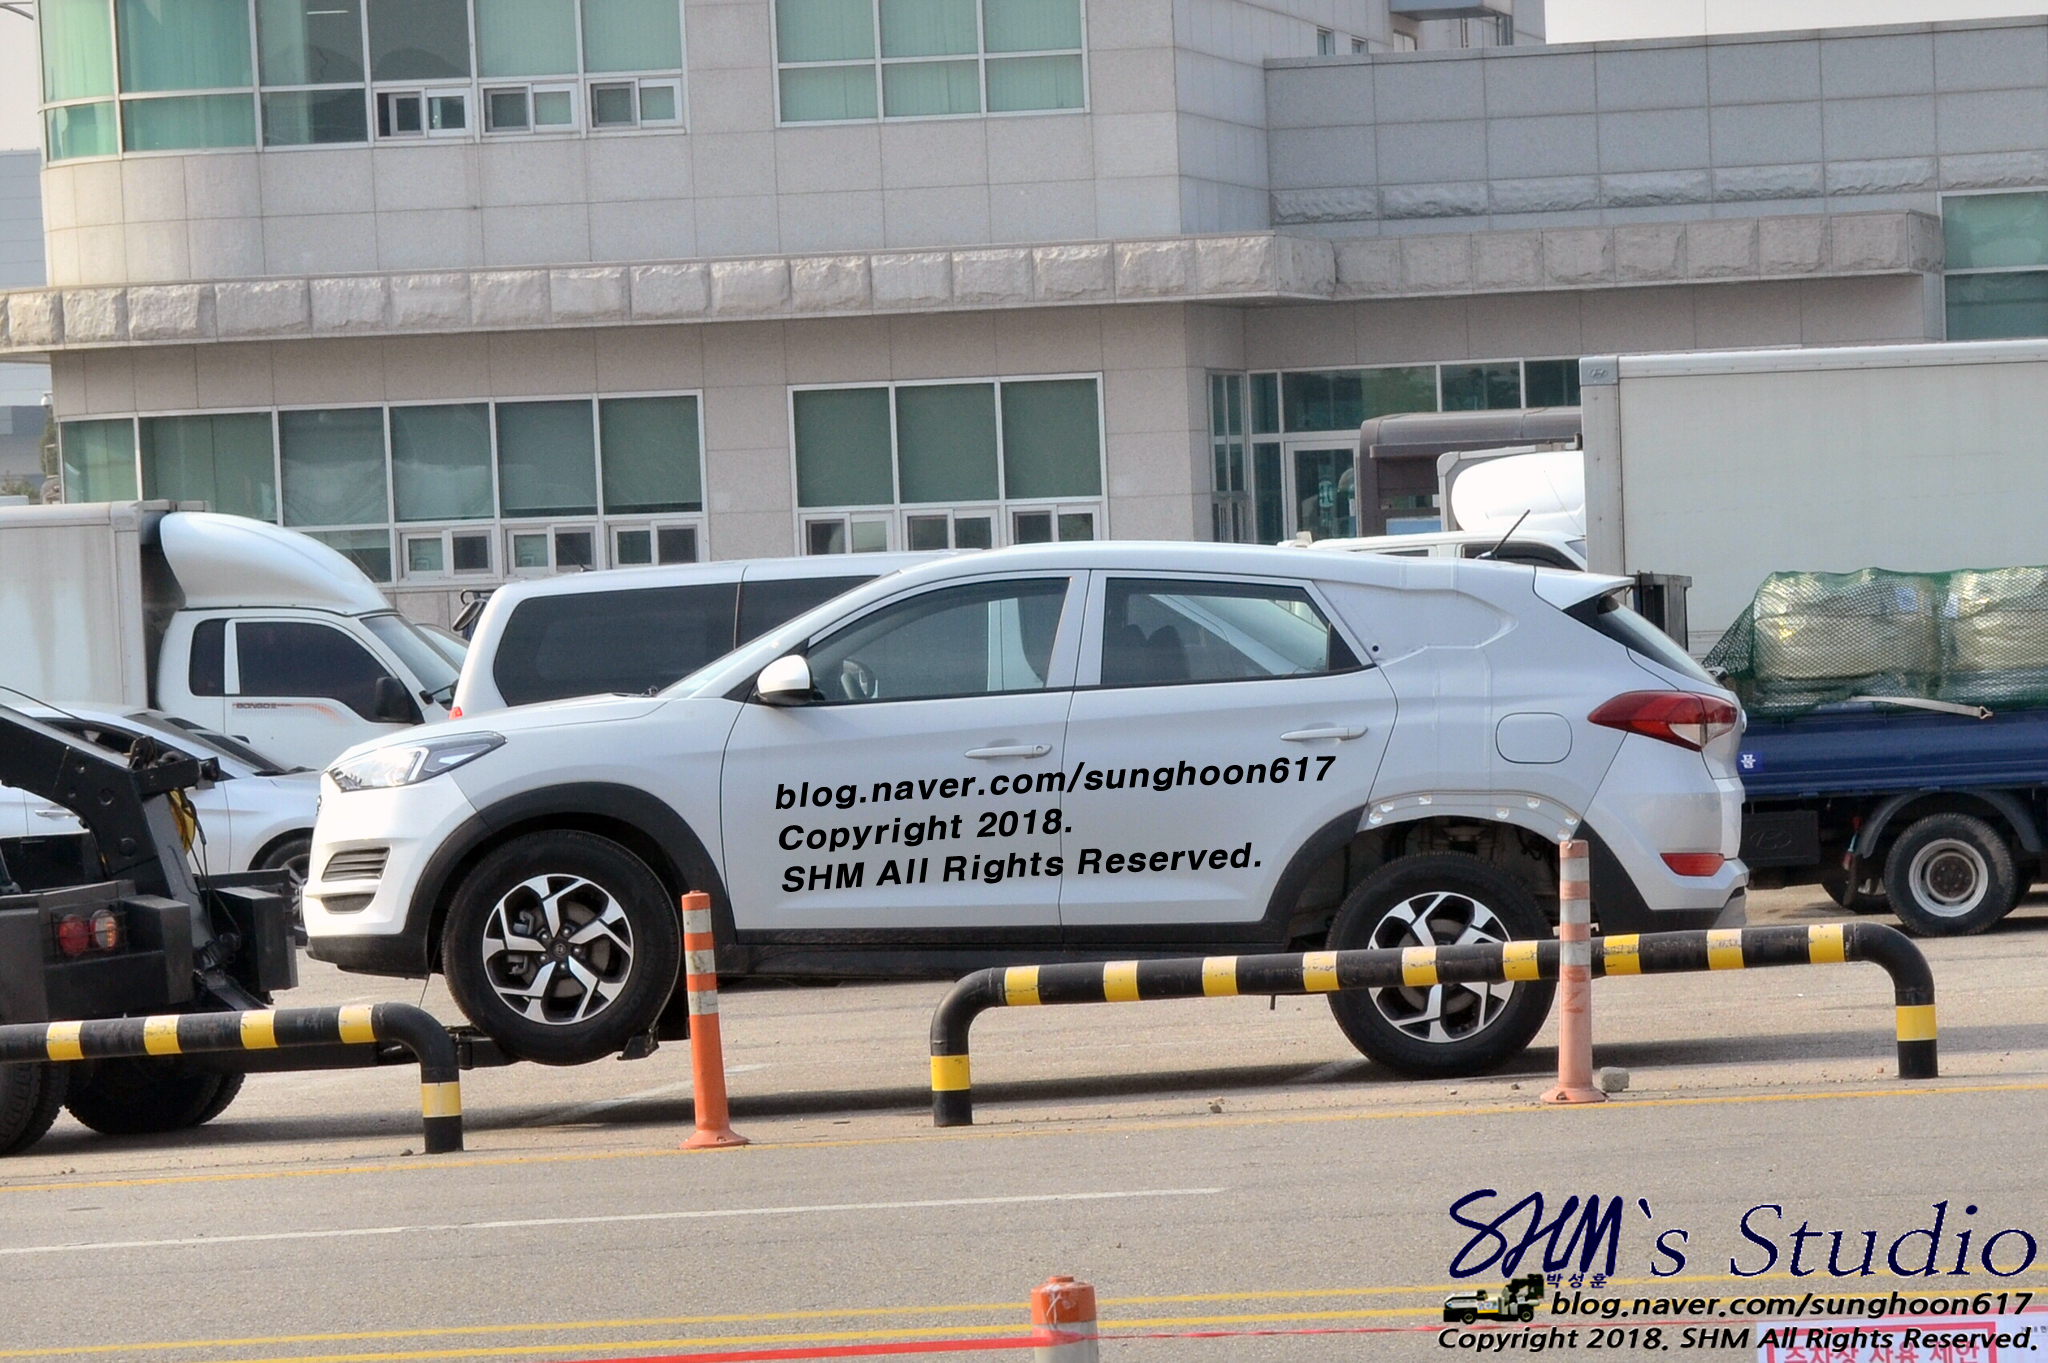 Mysterious Hyundai Tucson Test Mule Spied, Could Be Santa Cruz Pick-up